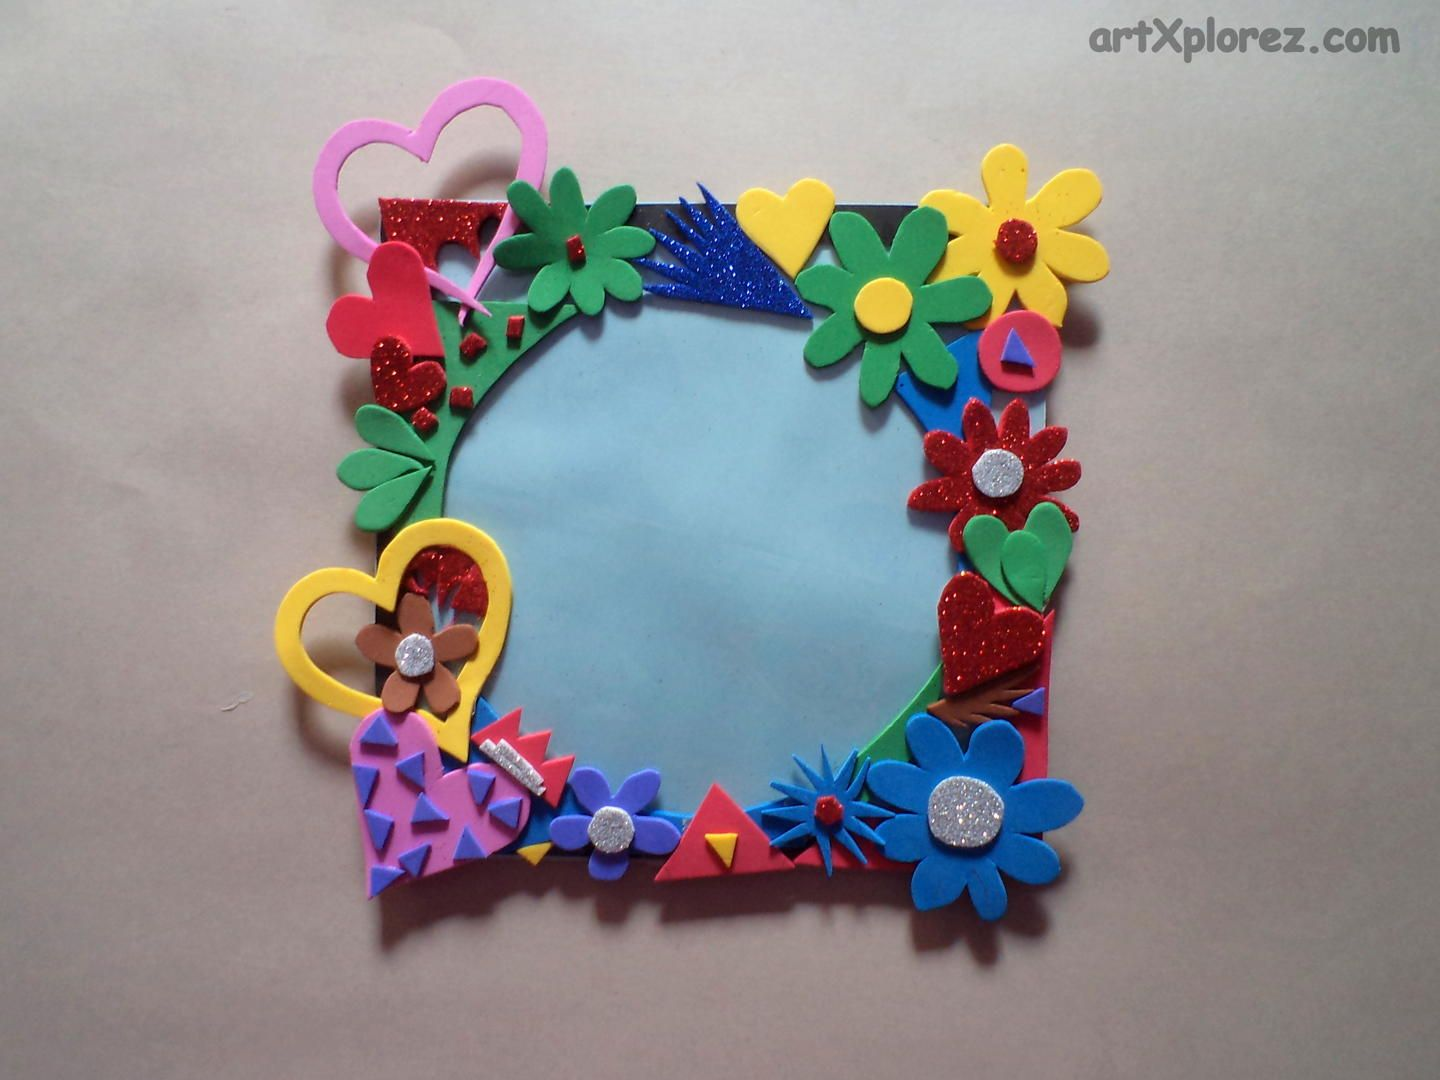 Handmade crafts using waste materials google search for Waste crafts making